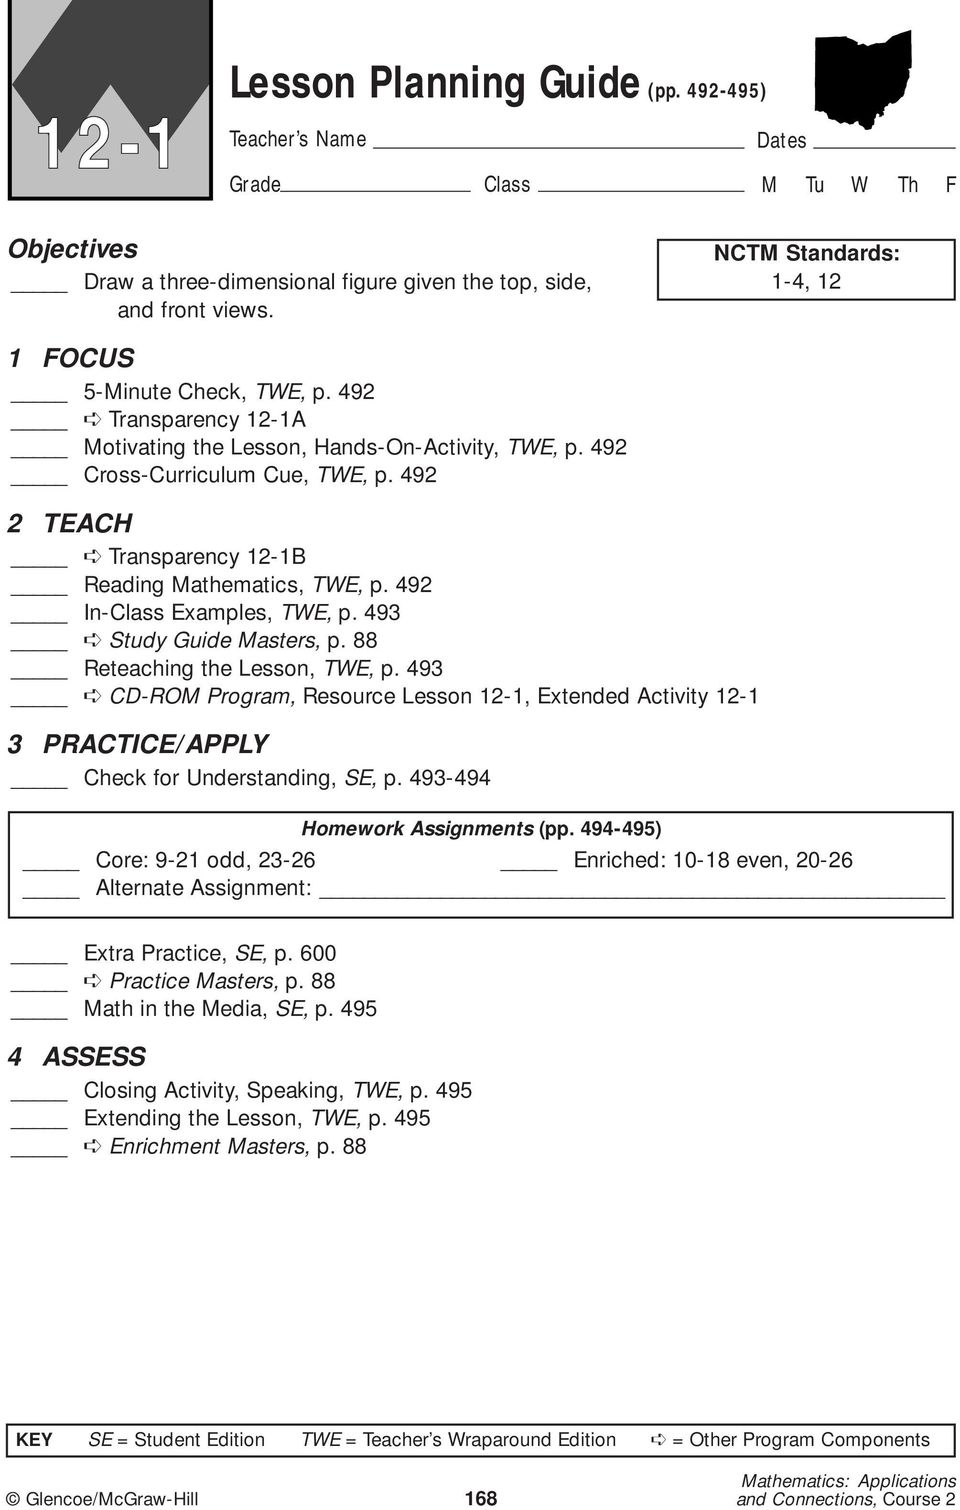 493 Study Guide Masters, p. 88 Reteaching the Lesson, TWE, p. 493 CD-ROM Program, Resource Lesson 12-1, Extended Activity 12-1 3 PRACTICE/APPLY Check for Understanding, SE, p.